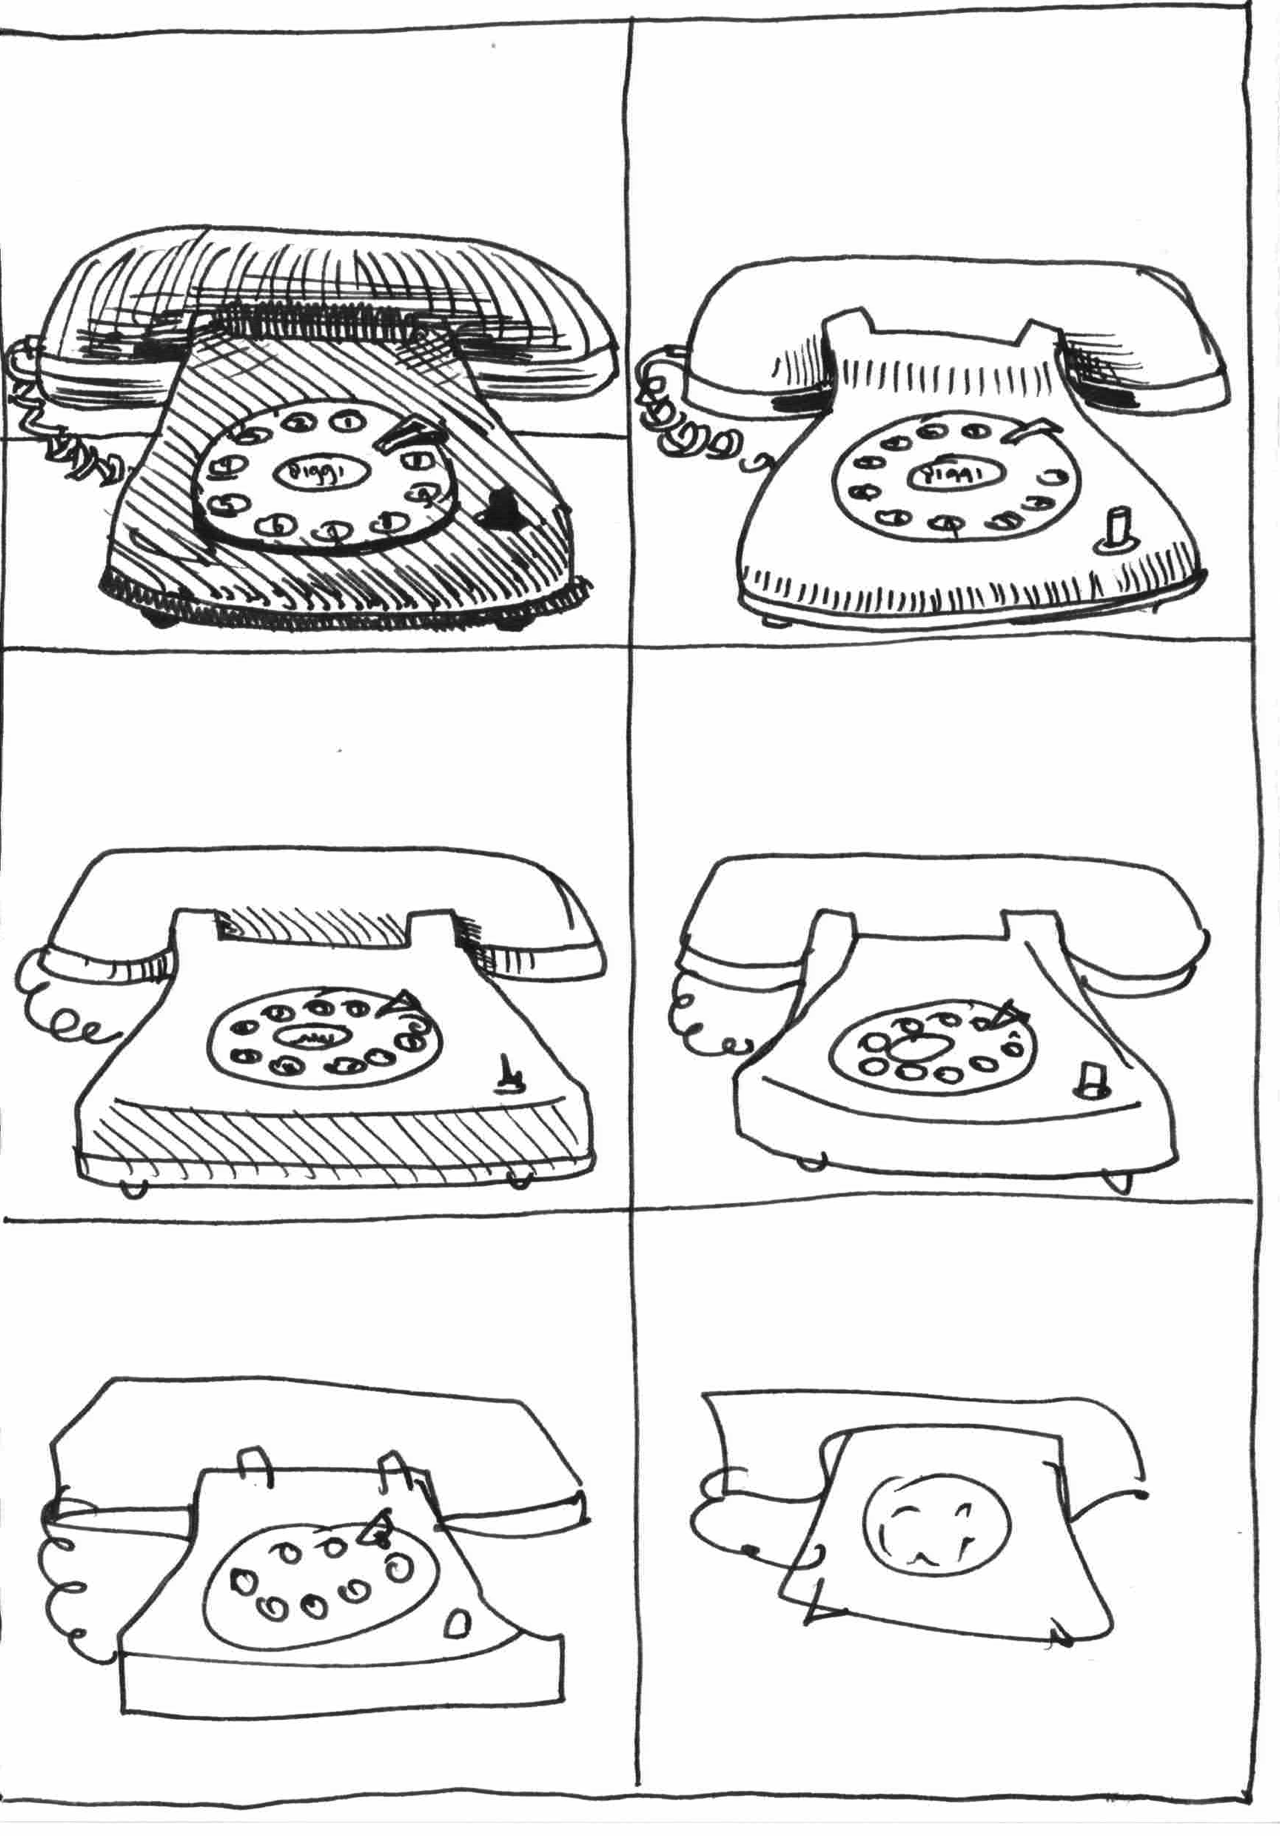 6 drawings of an oldschool phone